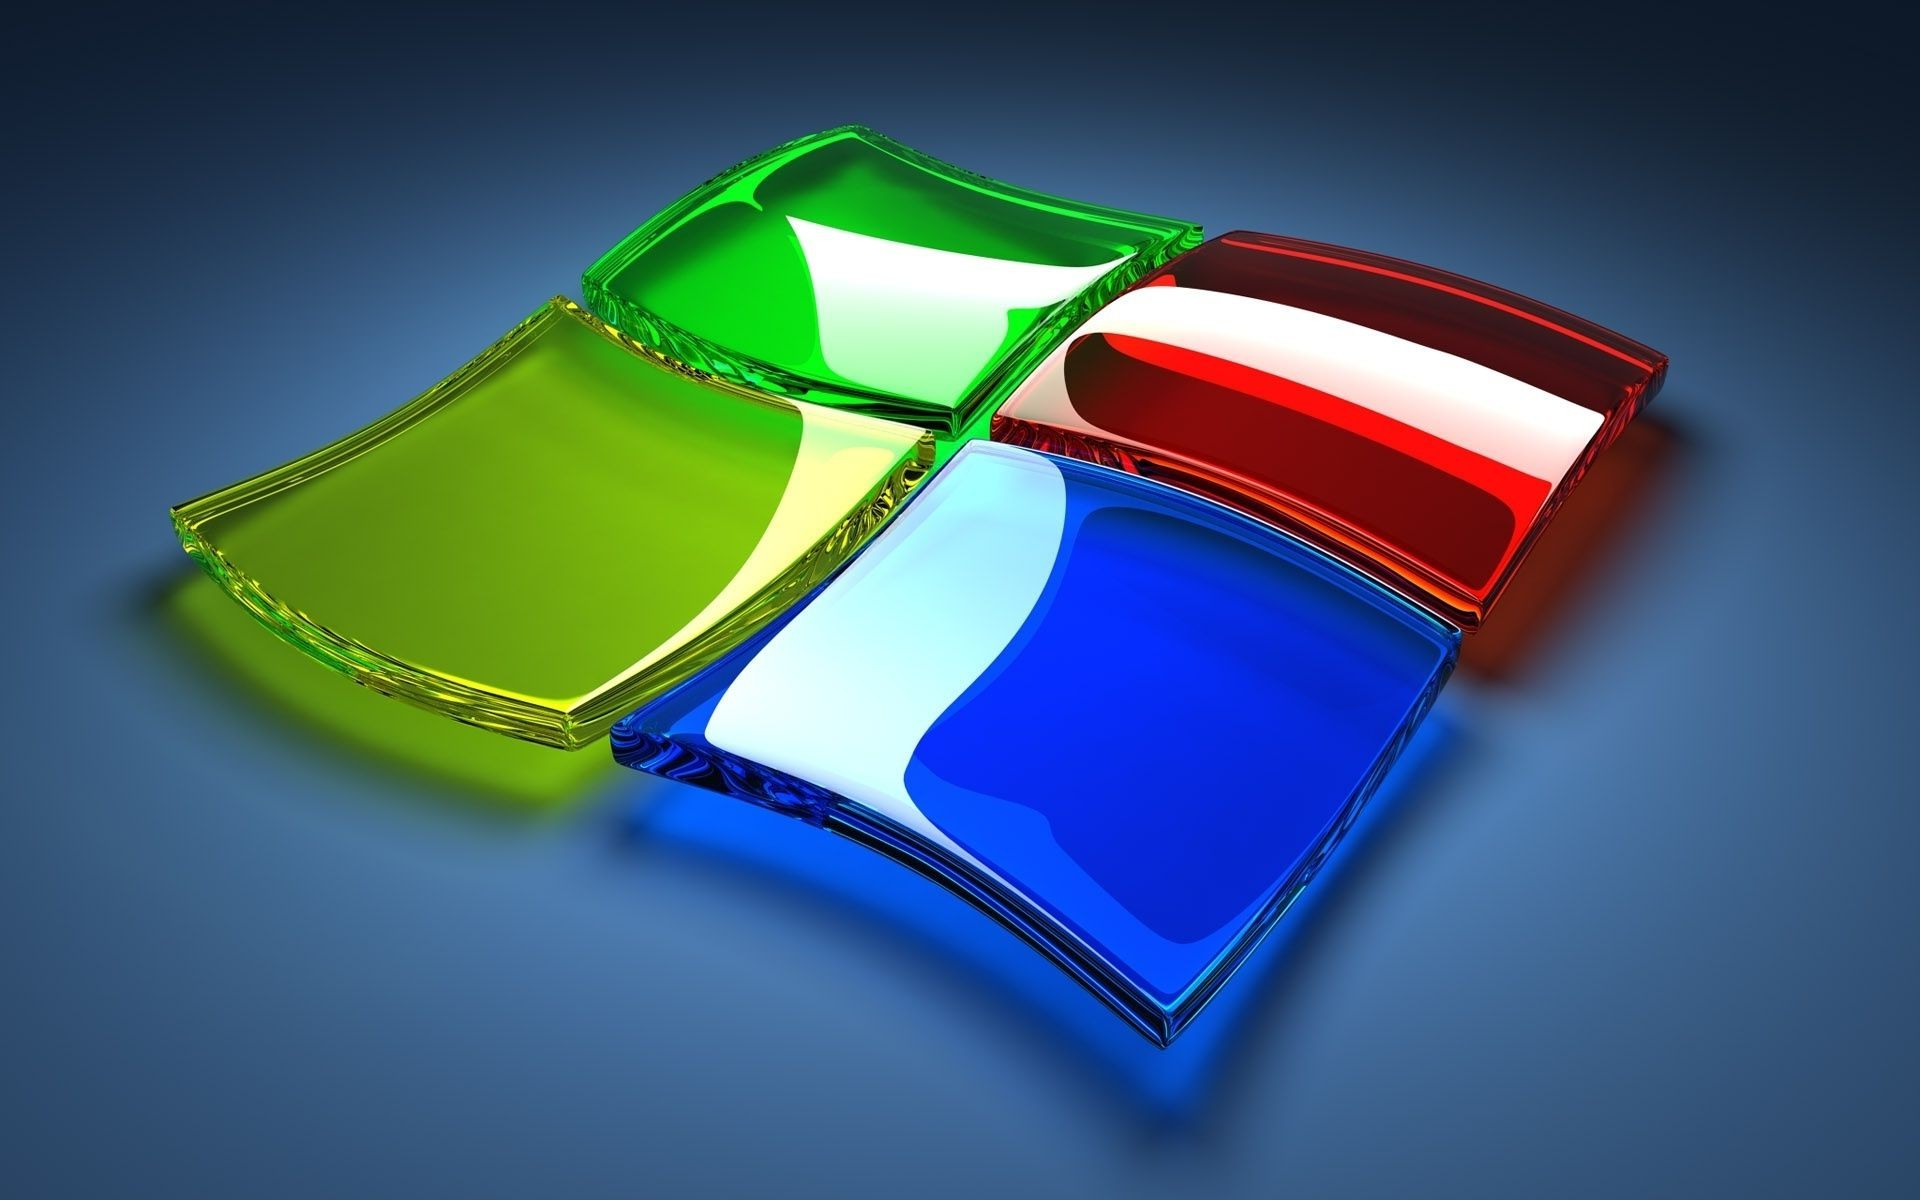 the windows logo made of glass of different colors